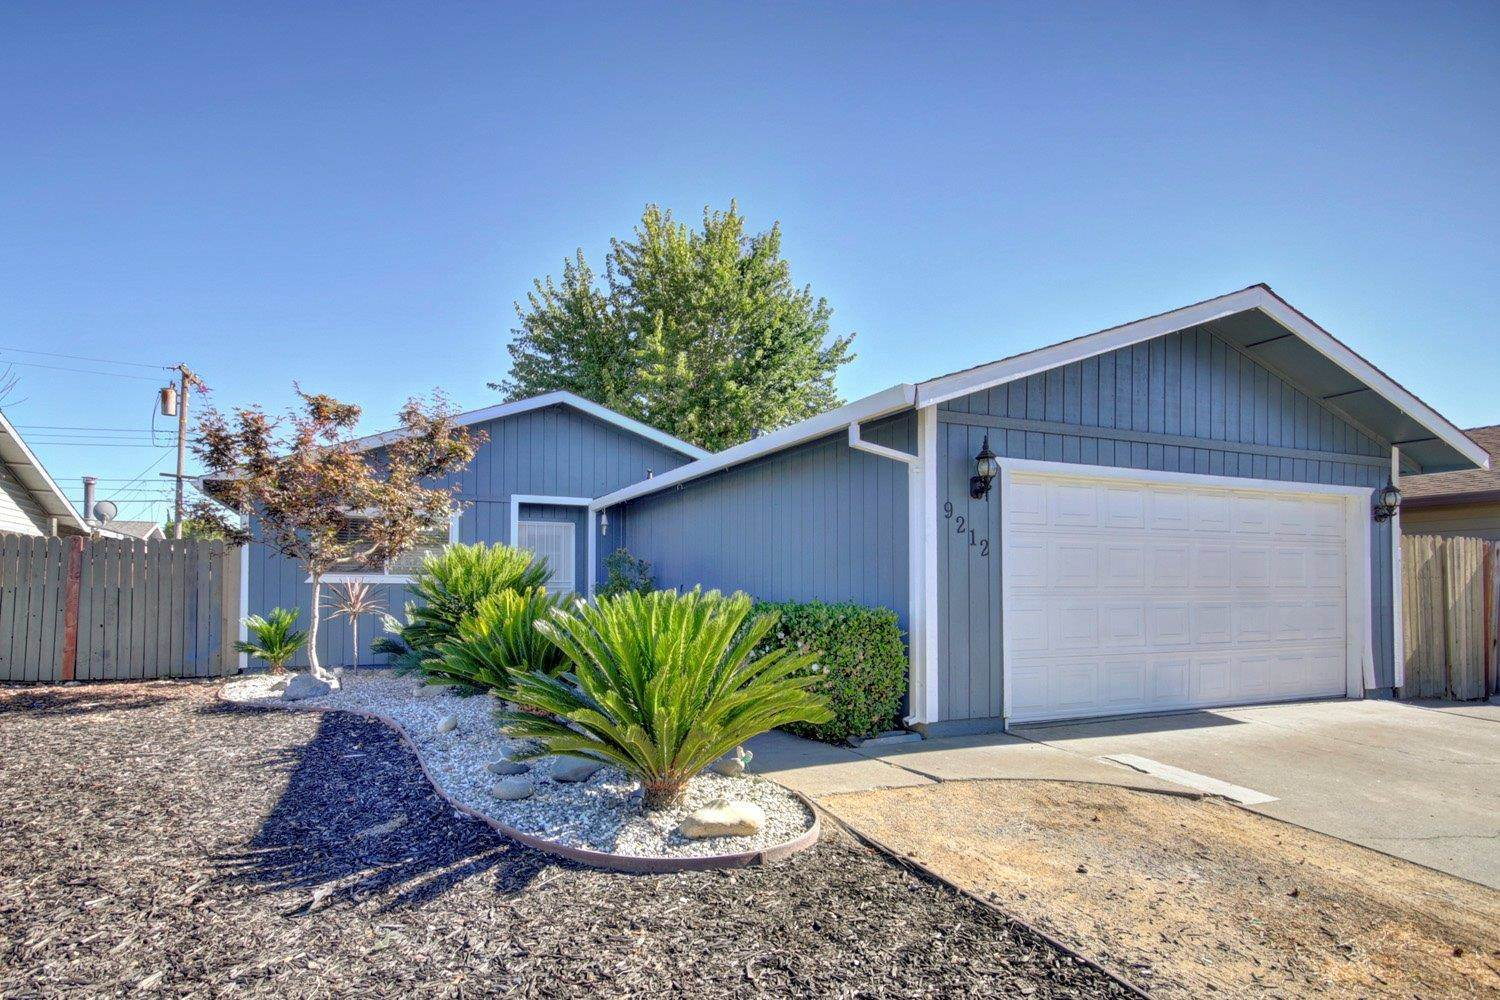 9212 Chianti Way, Elk Grove, CA 95624